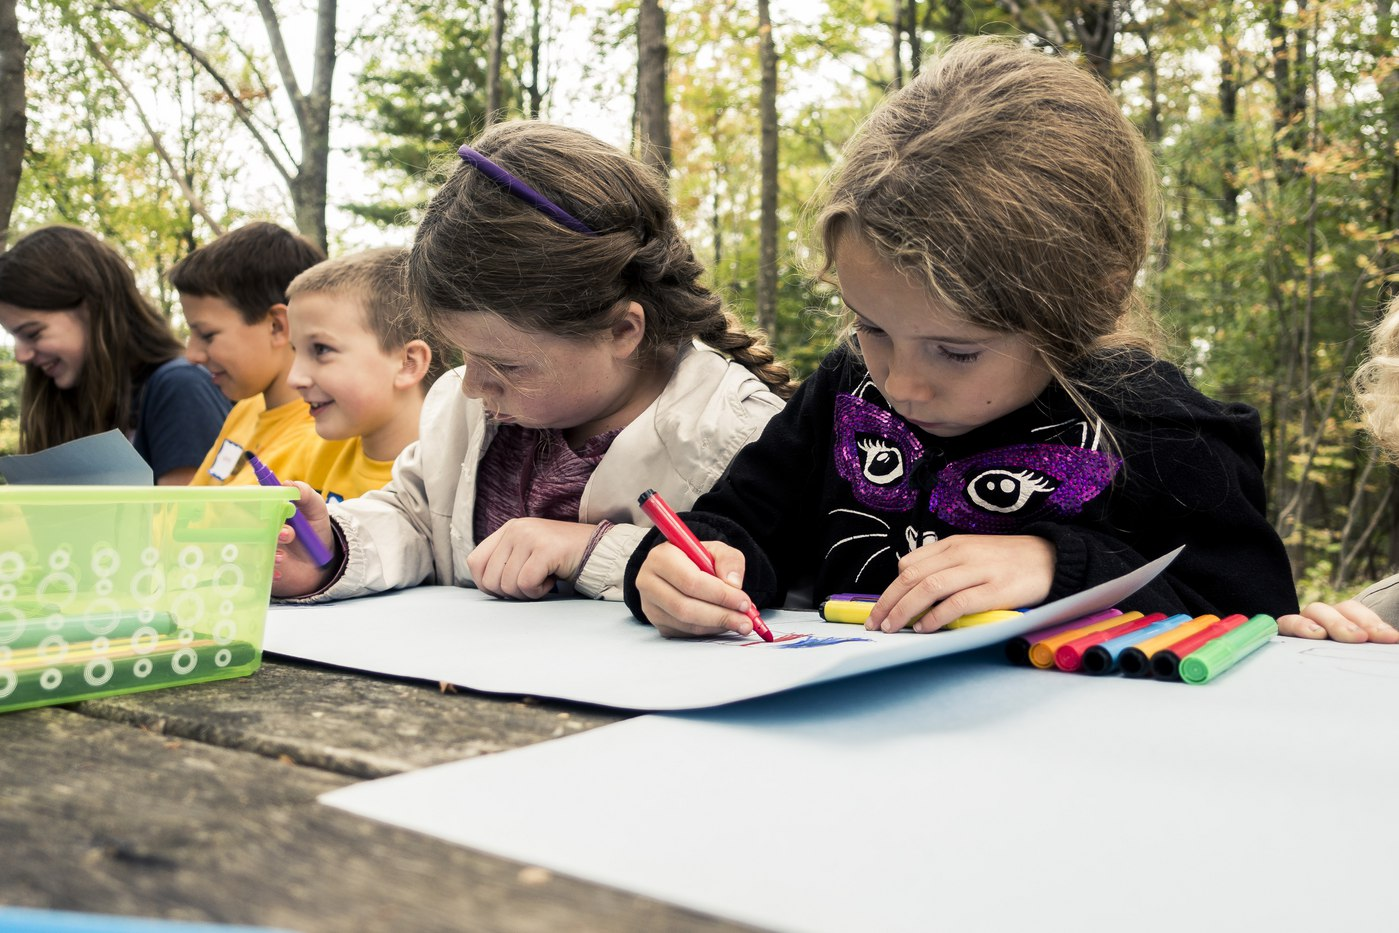 PA cyber school kids drawing together at picnic table